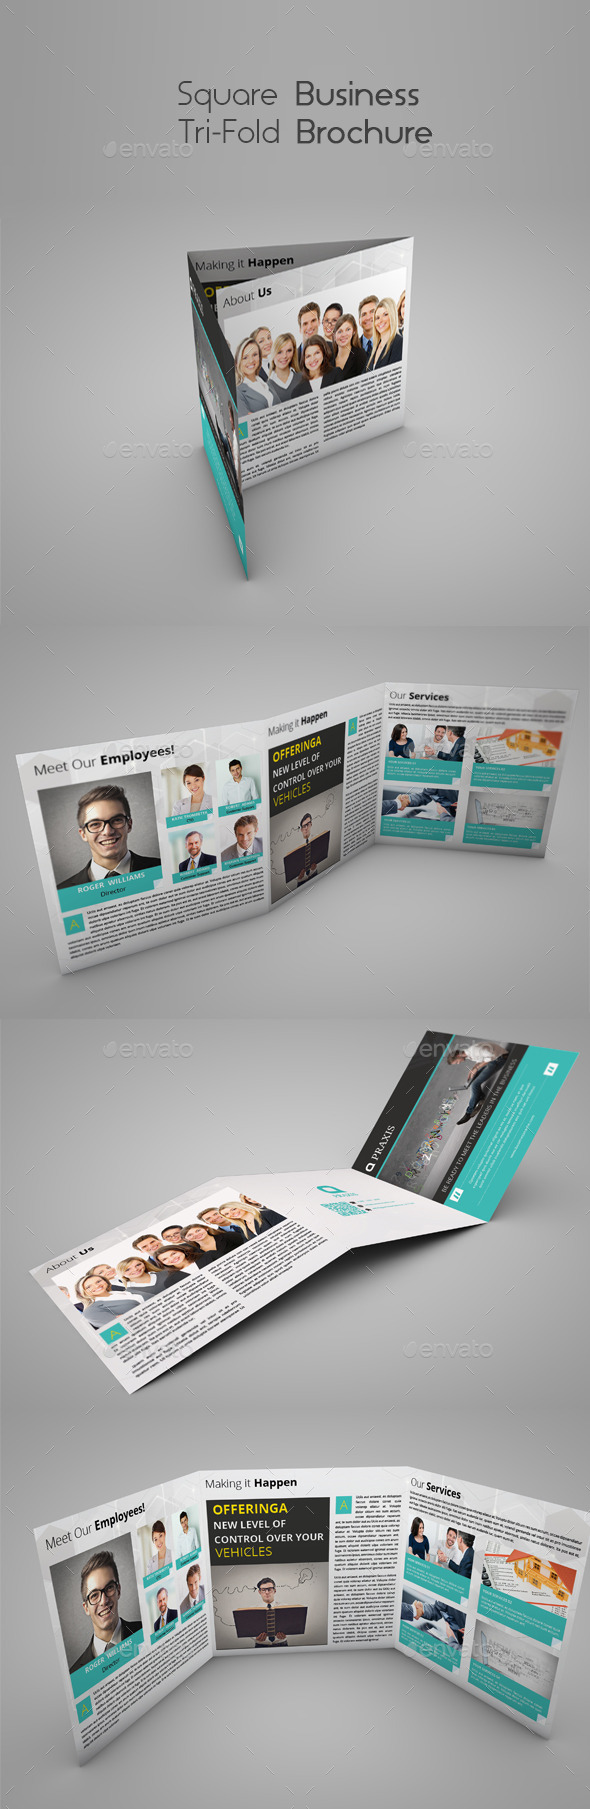 Square Business Tri-Fold Brochure - Brochures Print Templates